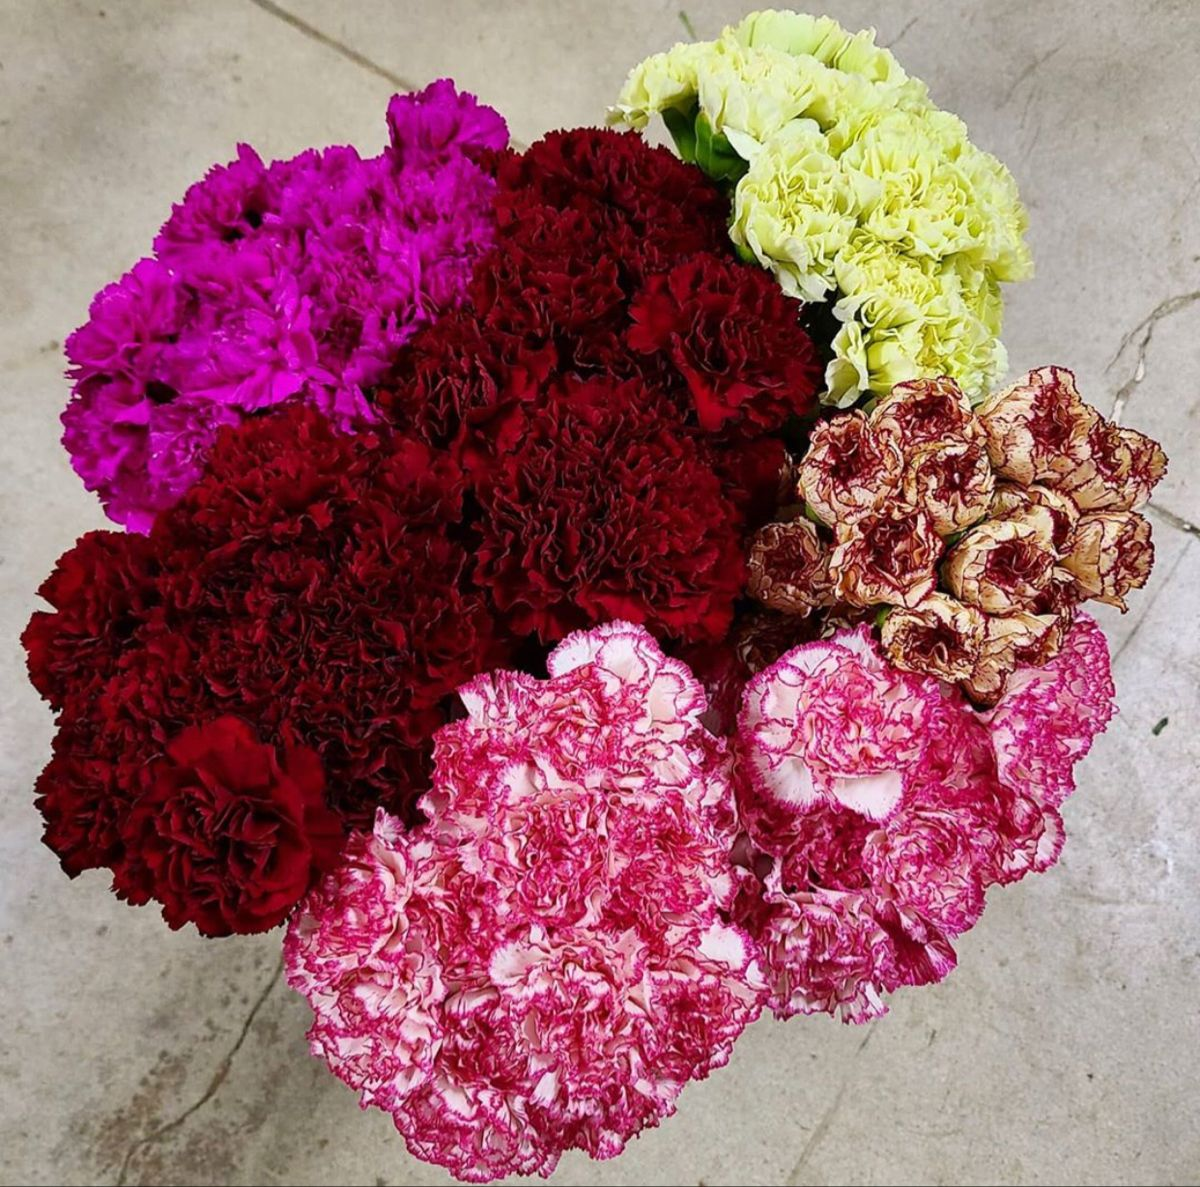 Carnation Flower In 2020 Carnation Flower Flowers For Sale Mini Carnations